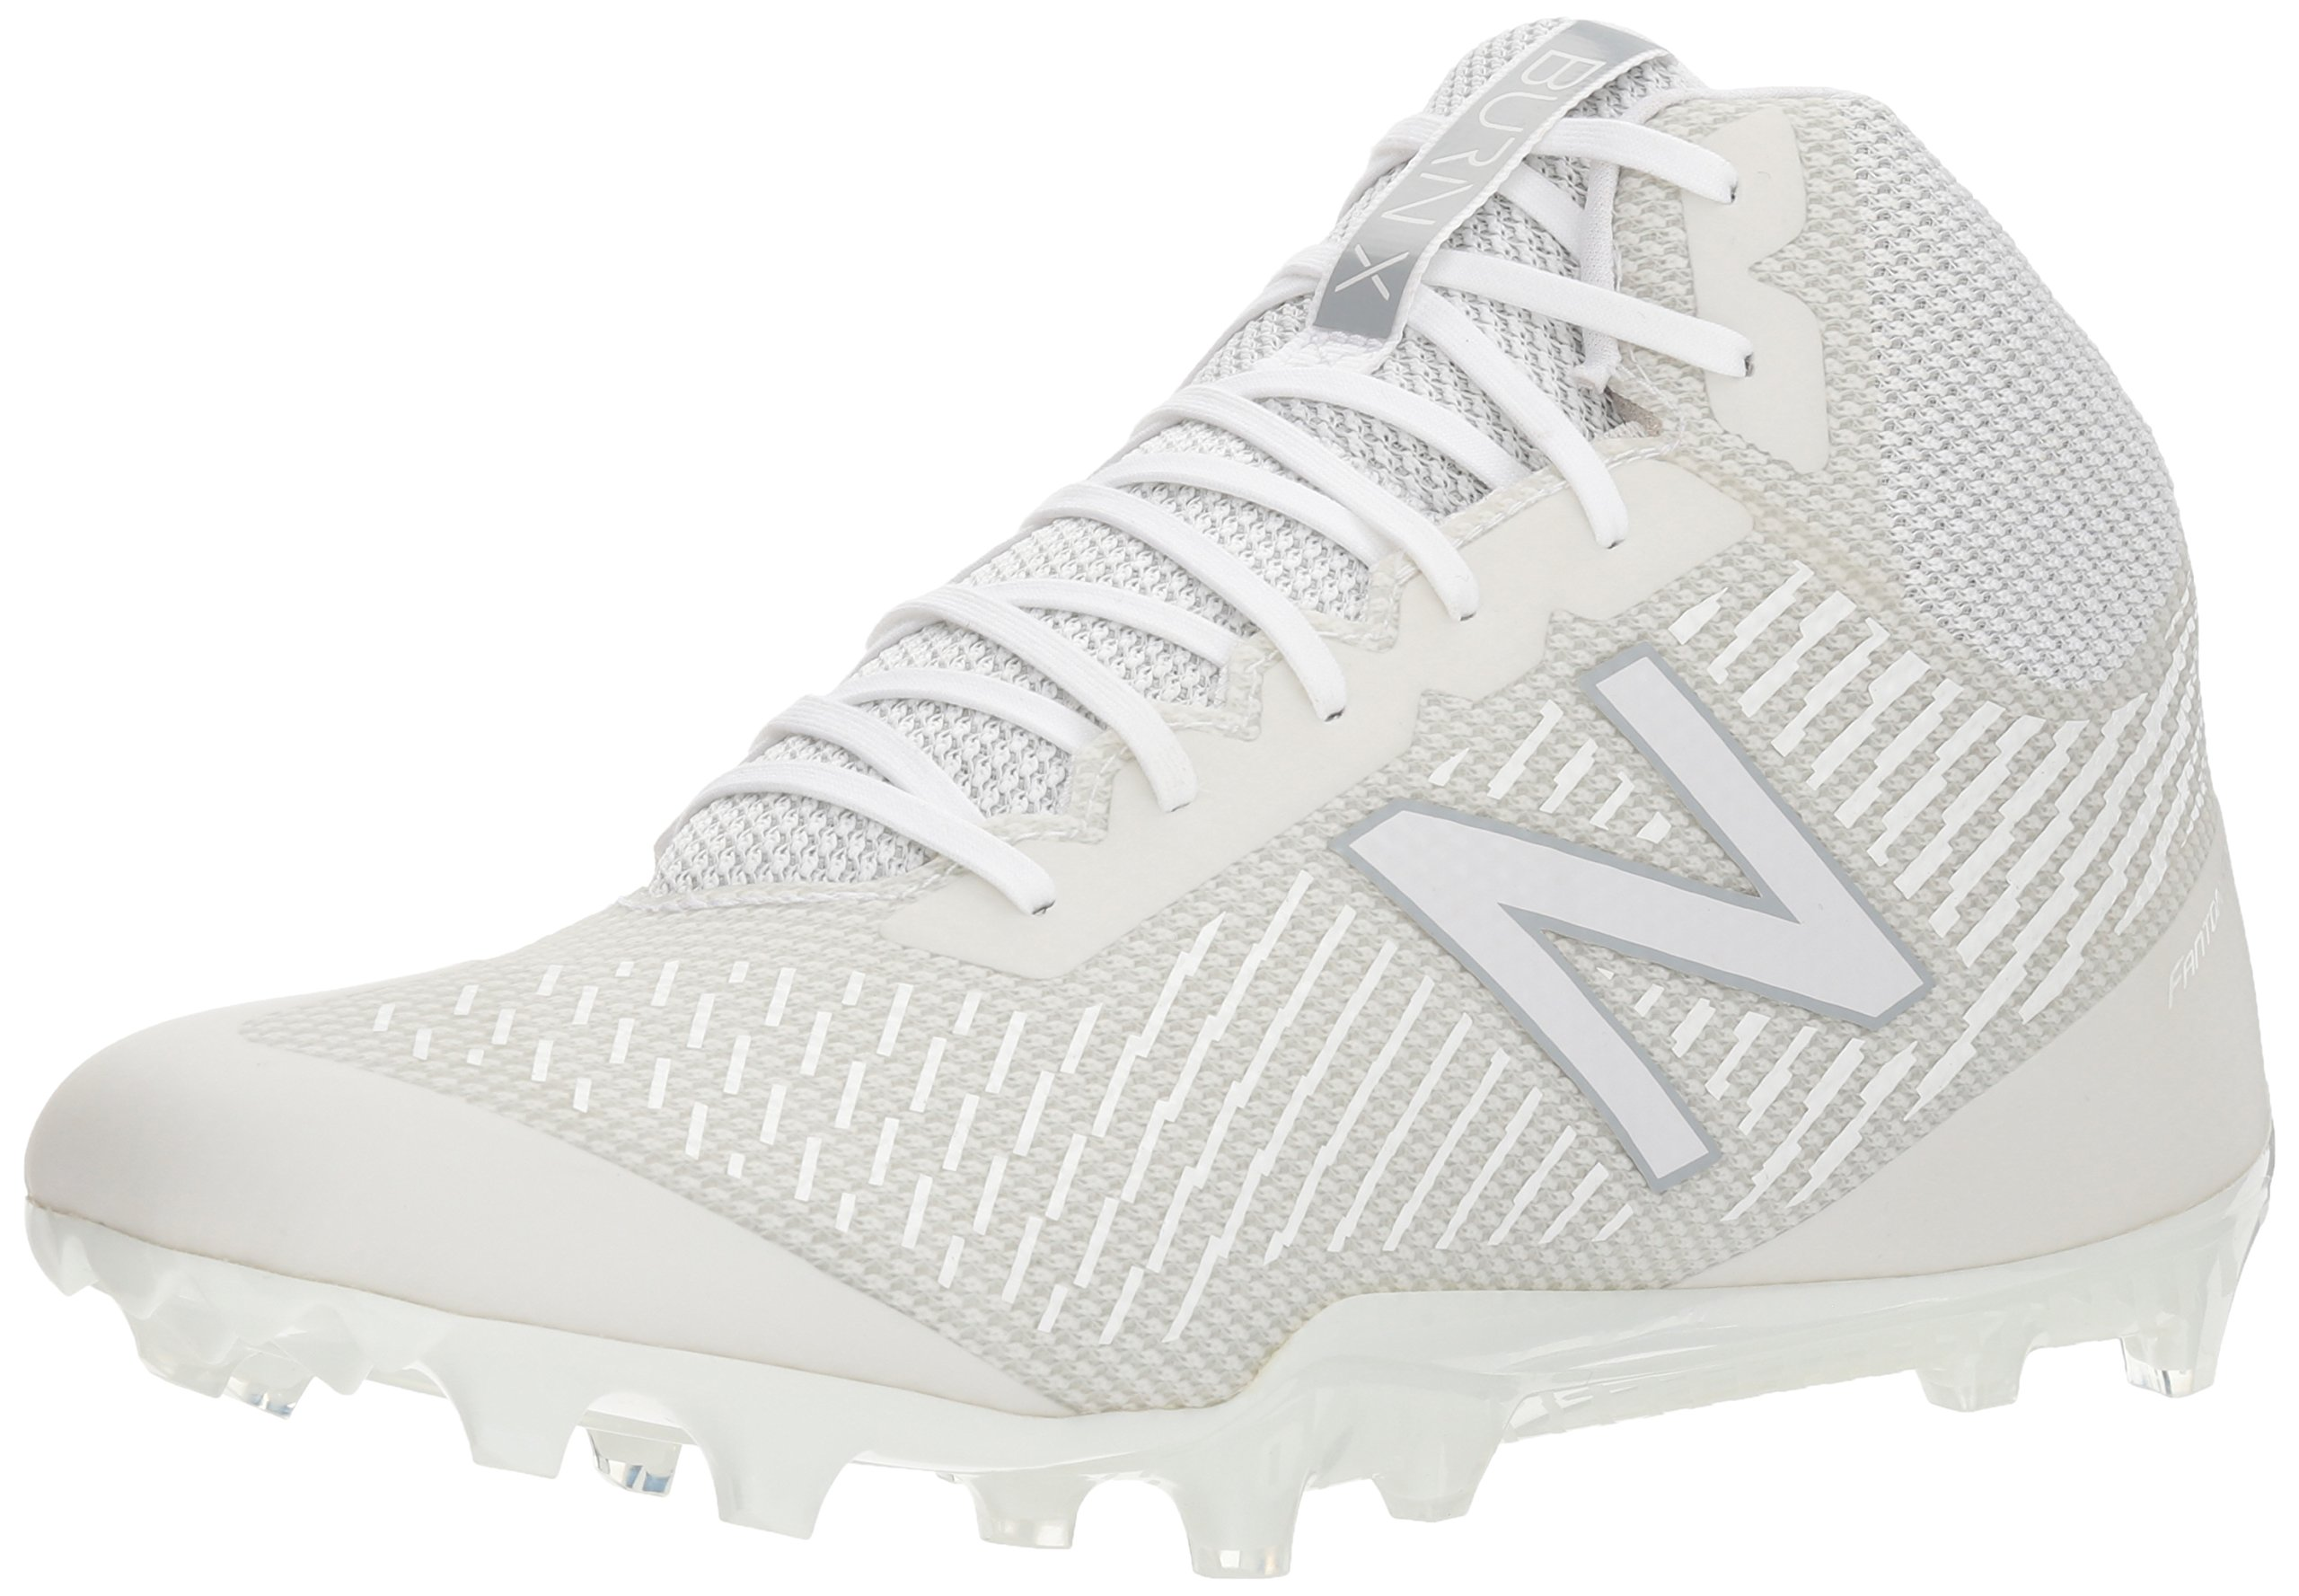 New Balance Men's Burn Mid Speed Lacrosse Shoe, White, 12.5 2E US by New Balance